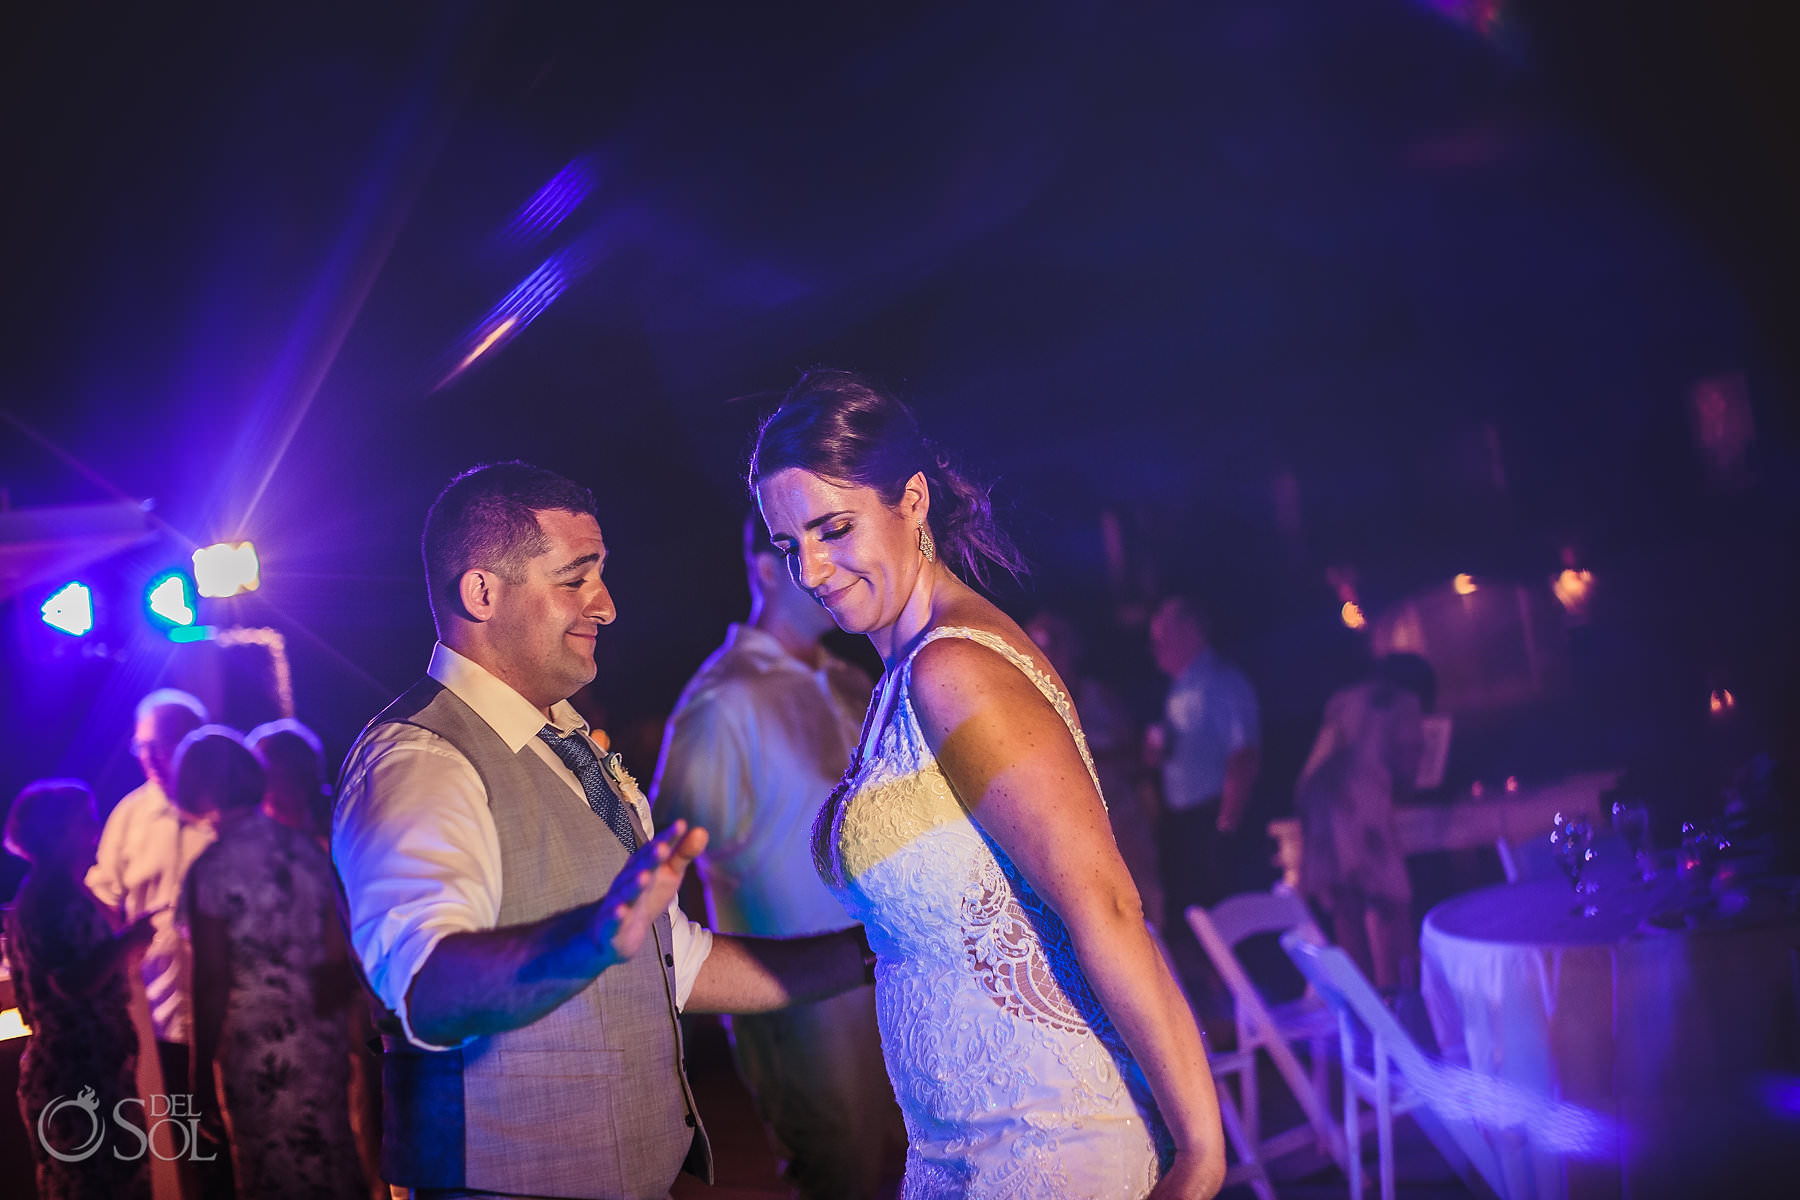 dreams tulum wedding sunset terrace reception party bride and groom having fun